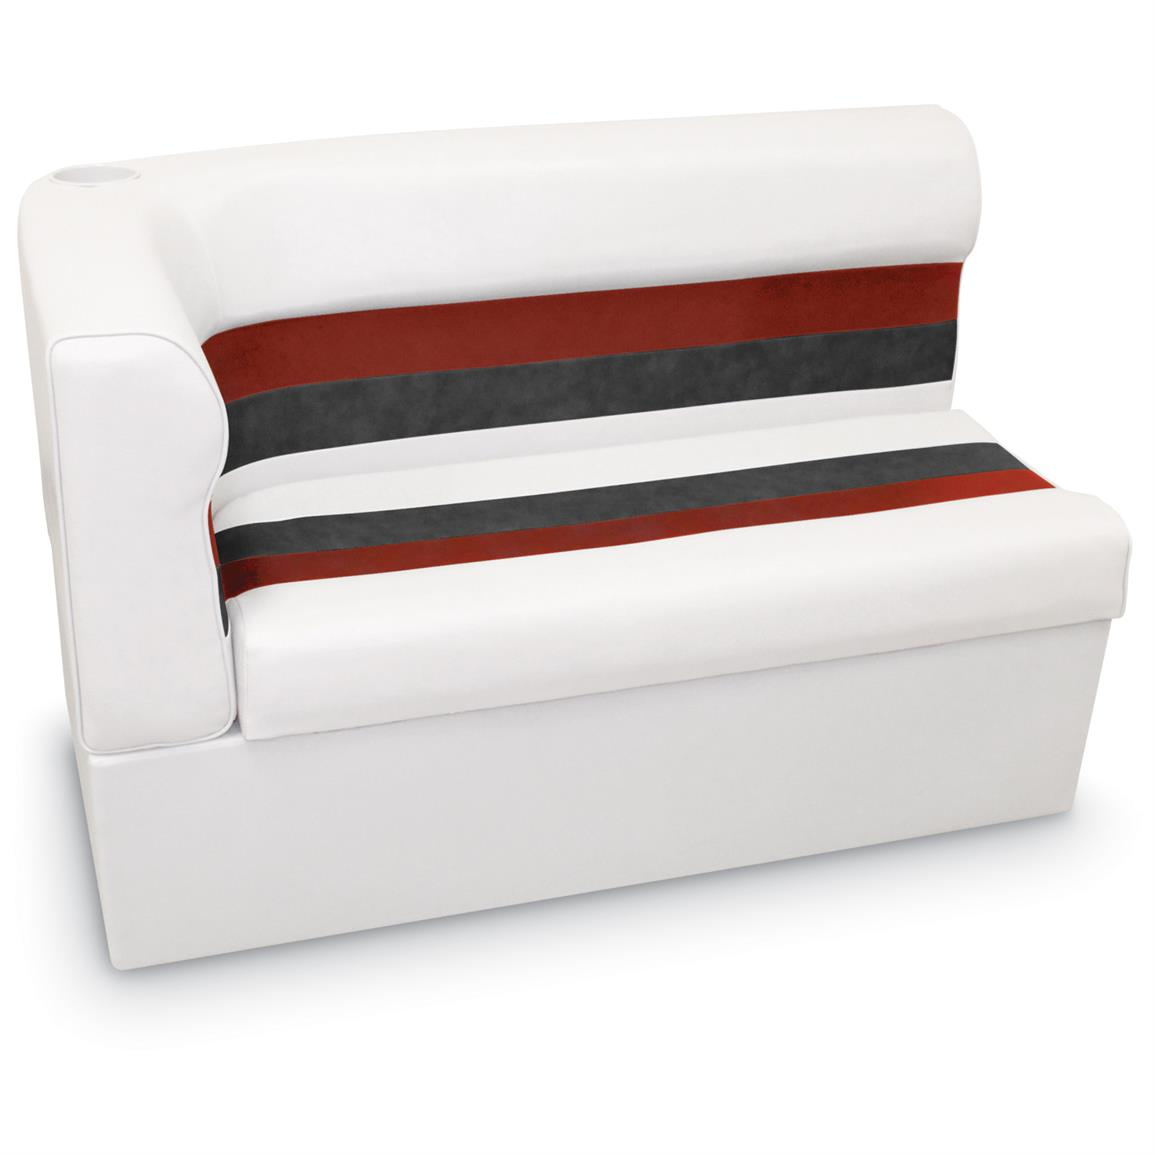 "Wise Long Corner Couch Pontoon Seat, 45"" Radius Right, White / Red Charcoal, Color G"